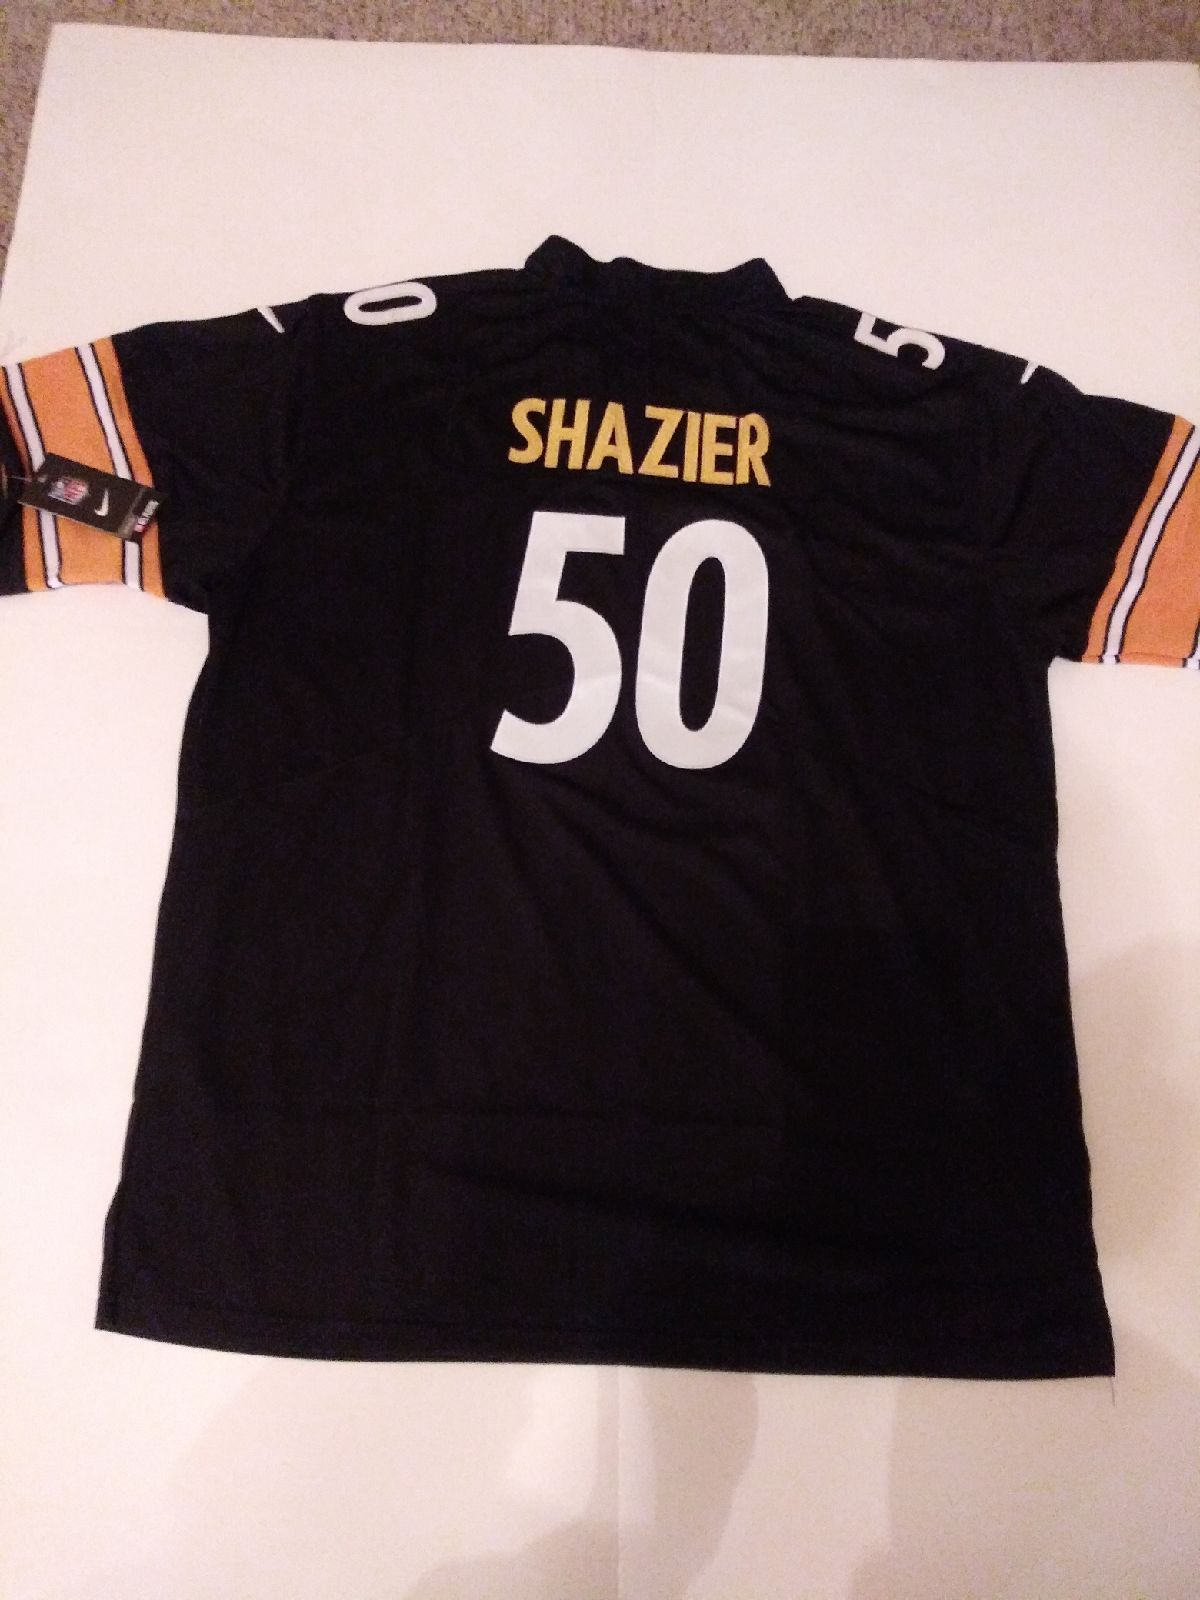 reputable site 31291 89615 Pittsburgh Steelers #50 Ryan Shazier Black Jersey Size 3xl ...